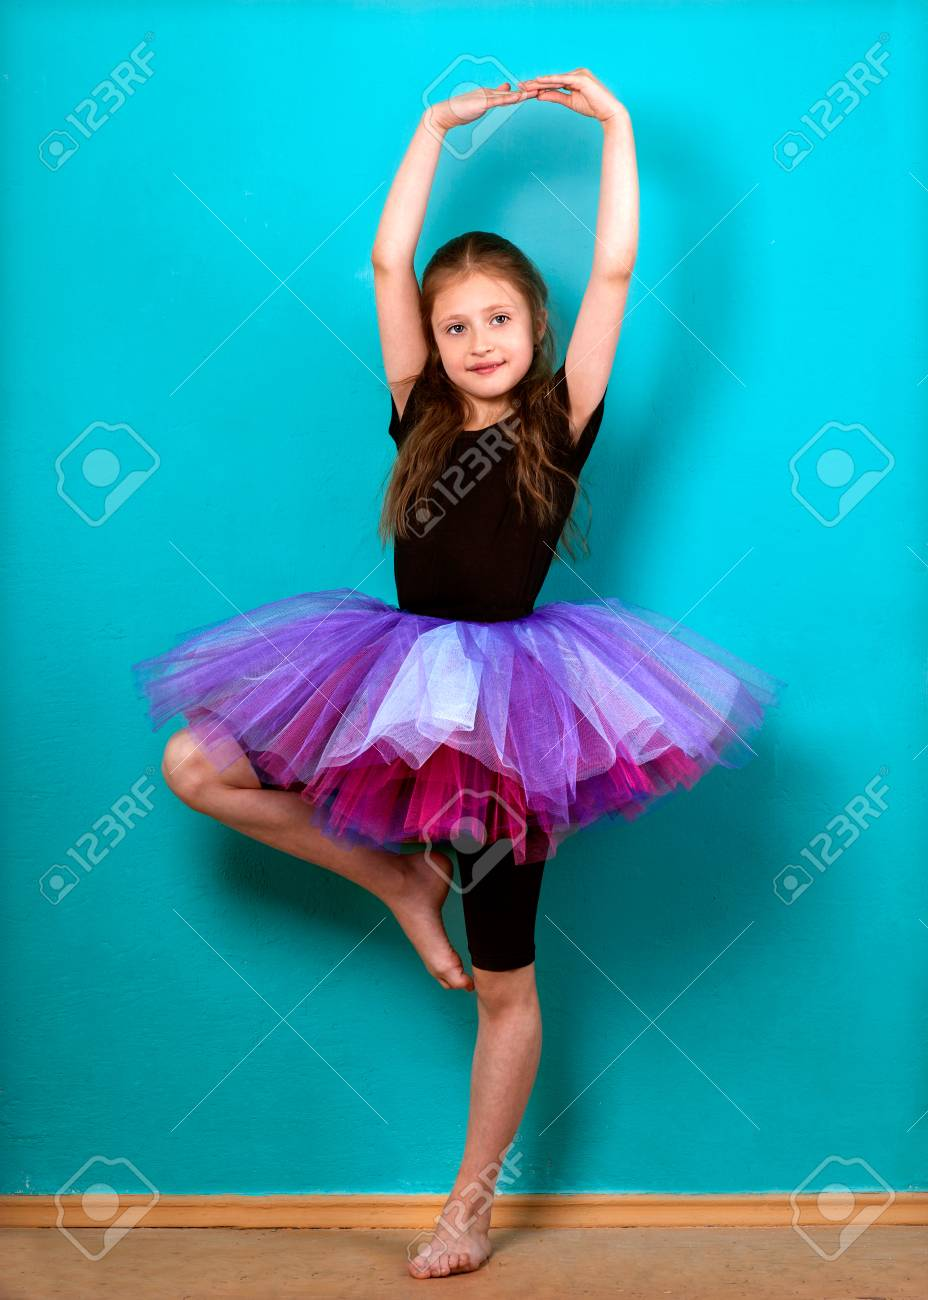 1f587d0f6 Little Girl Dreams Of Becoming Ballerina In A Tutu Skirt Violet ...